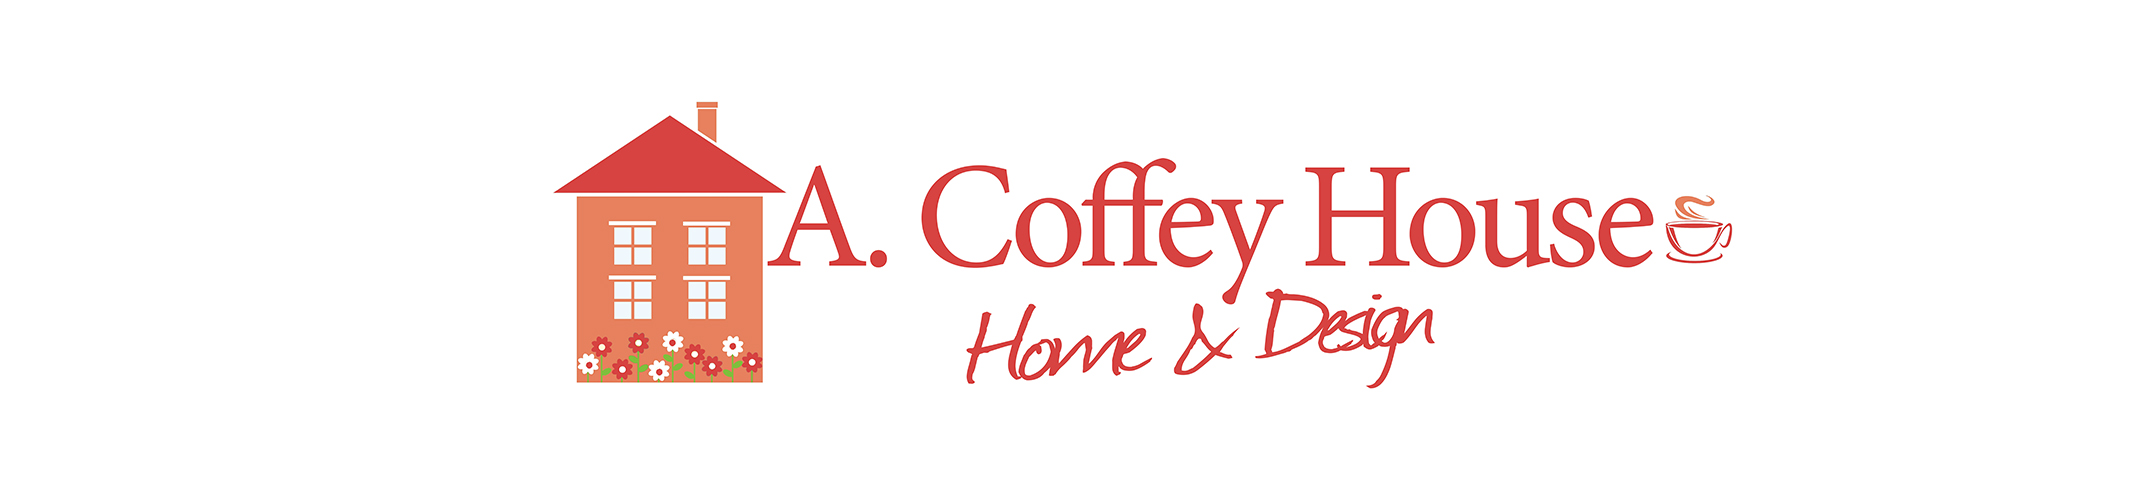 A. Coffey House